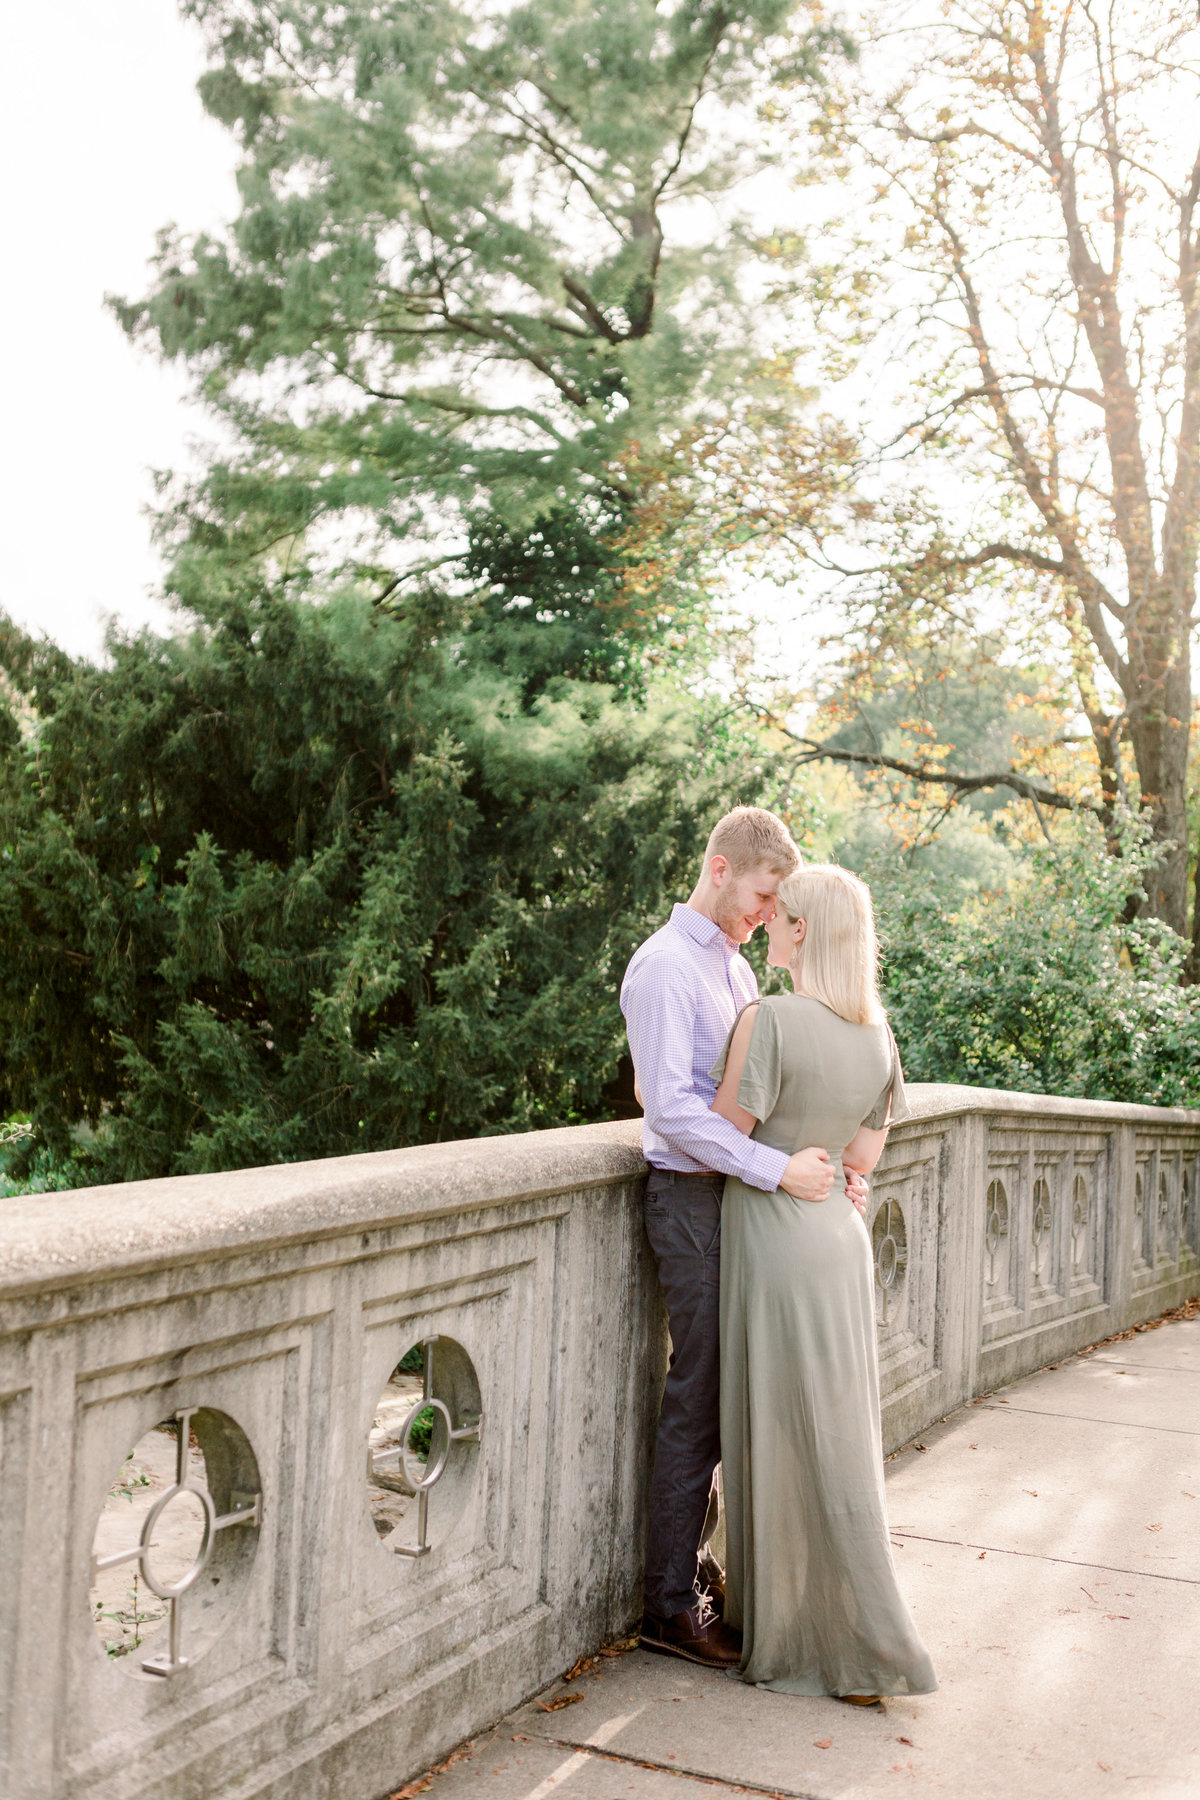 Cincinnati-engagement-wedding-photographer-eden-park-art-museum-smale-riverfront025